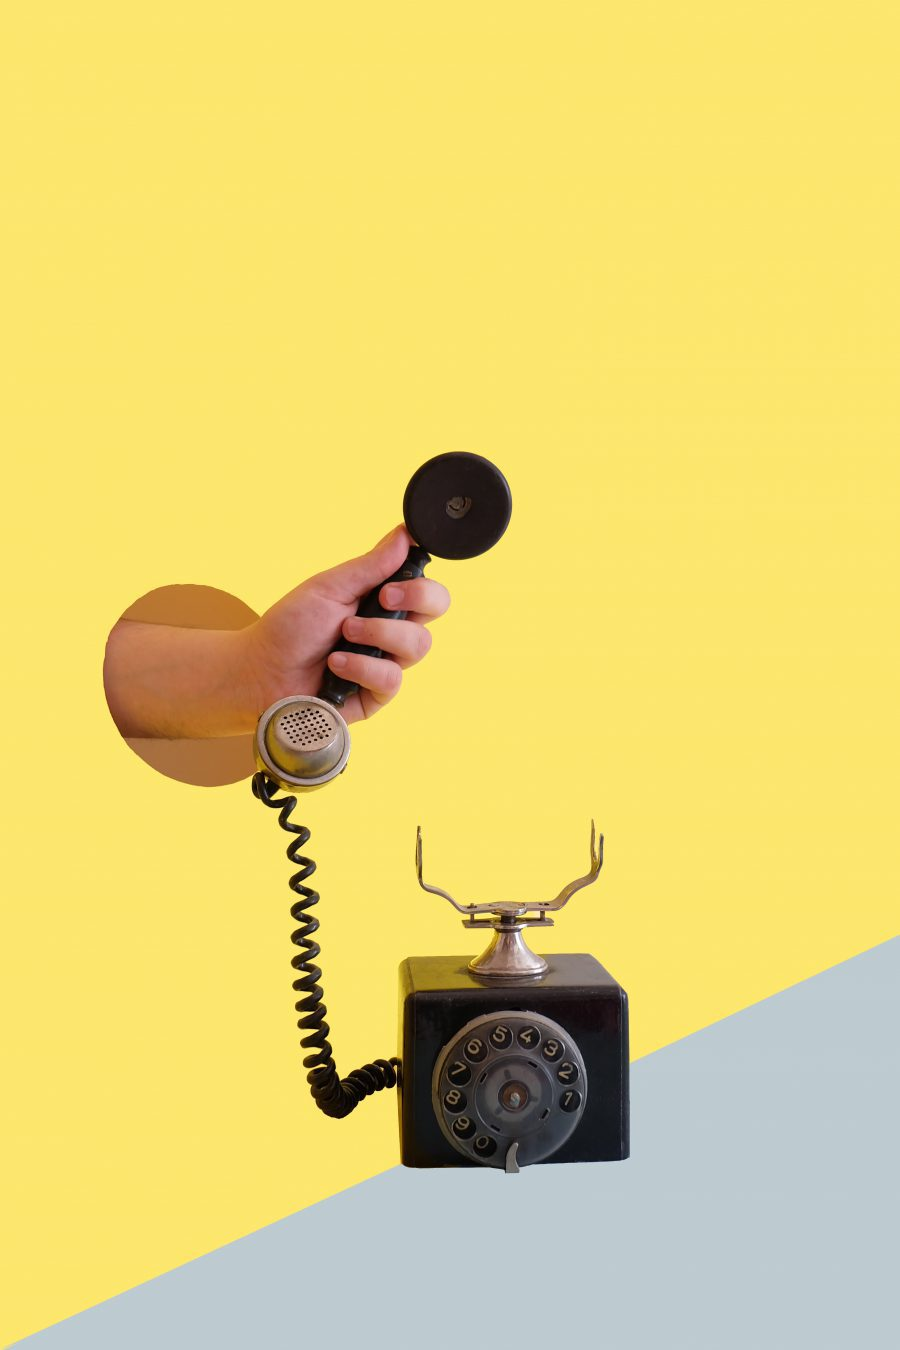 How to prepare for a telephone interview